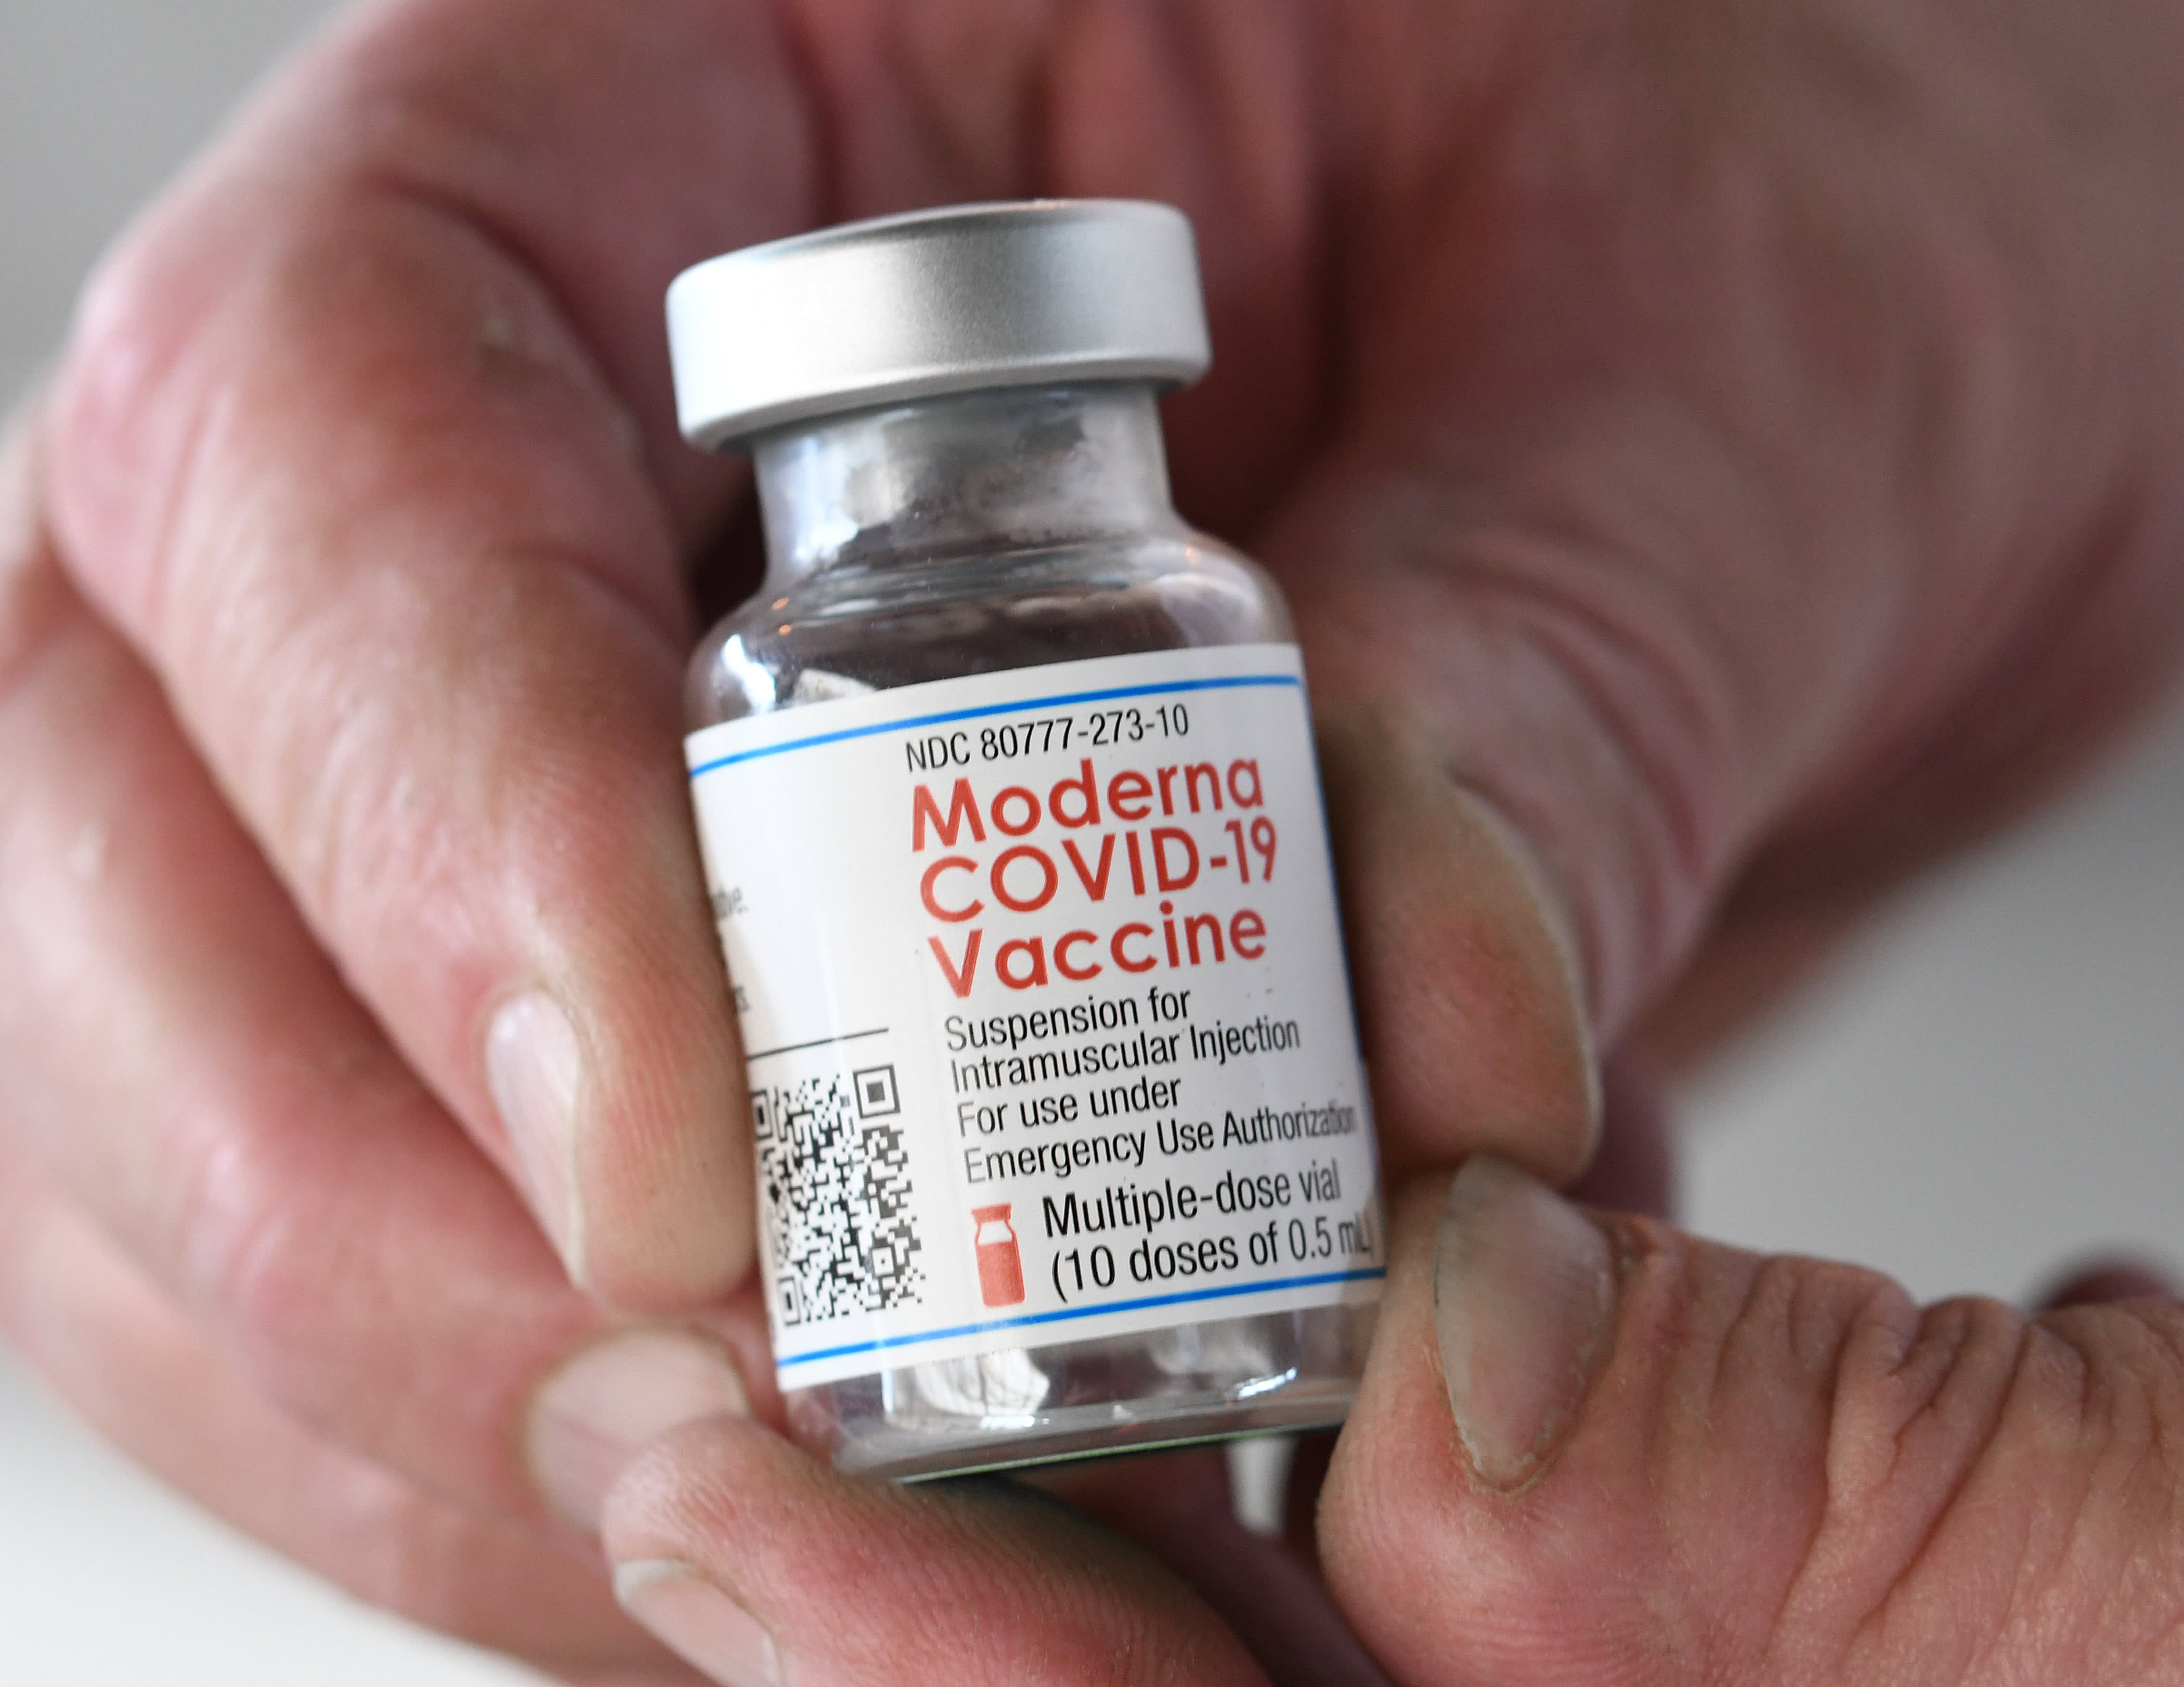 U.S. is in discussions with Moderna on buying Covid vaccine doses for other nations